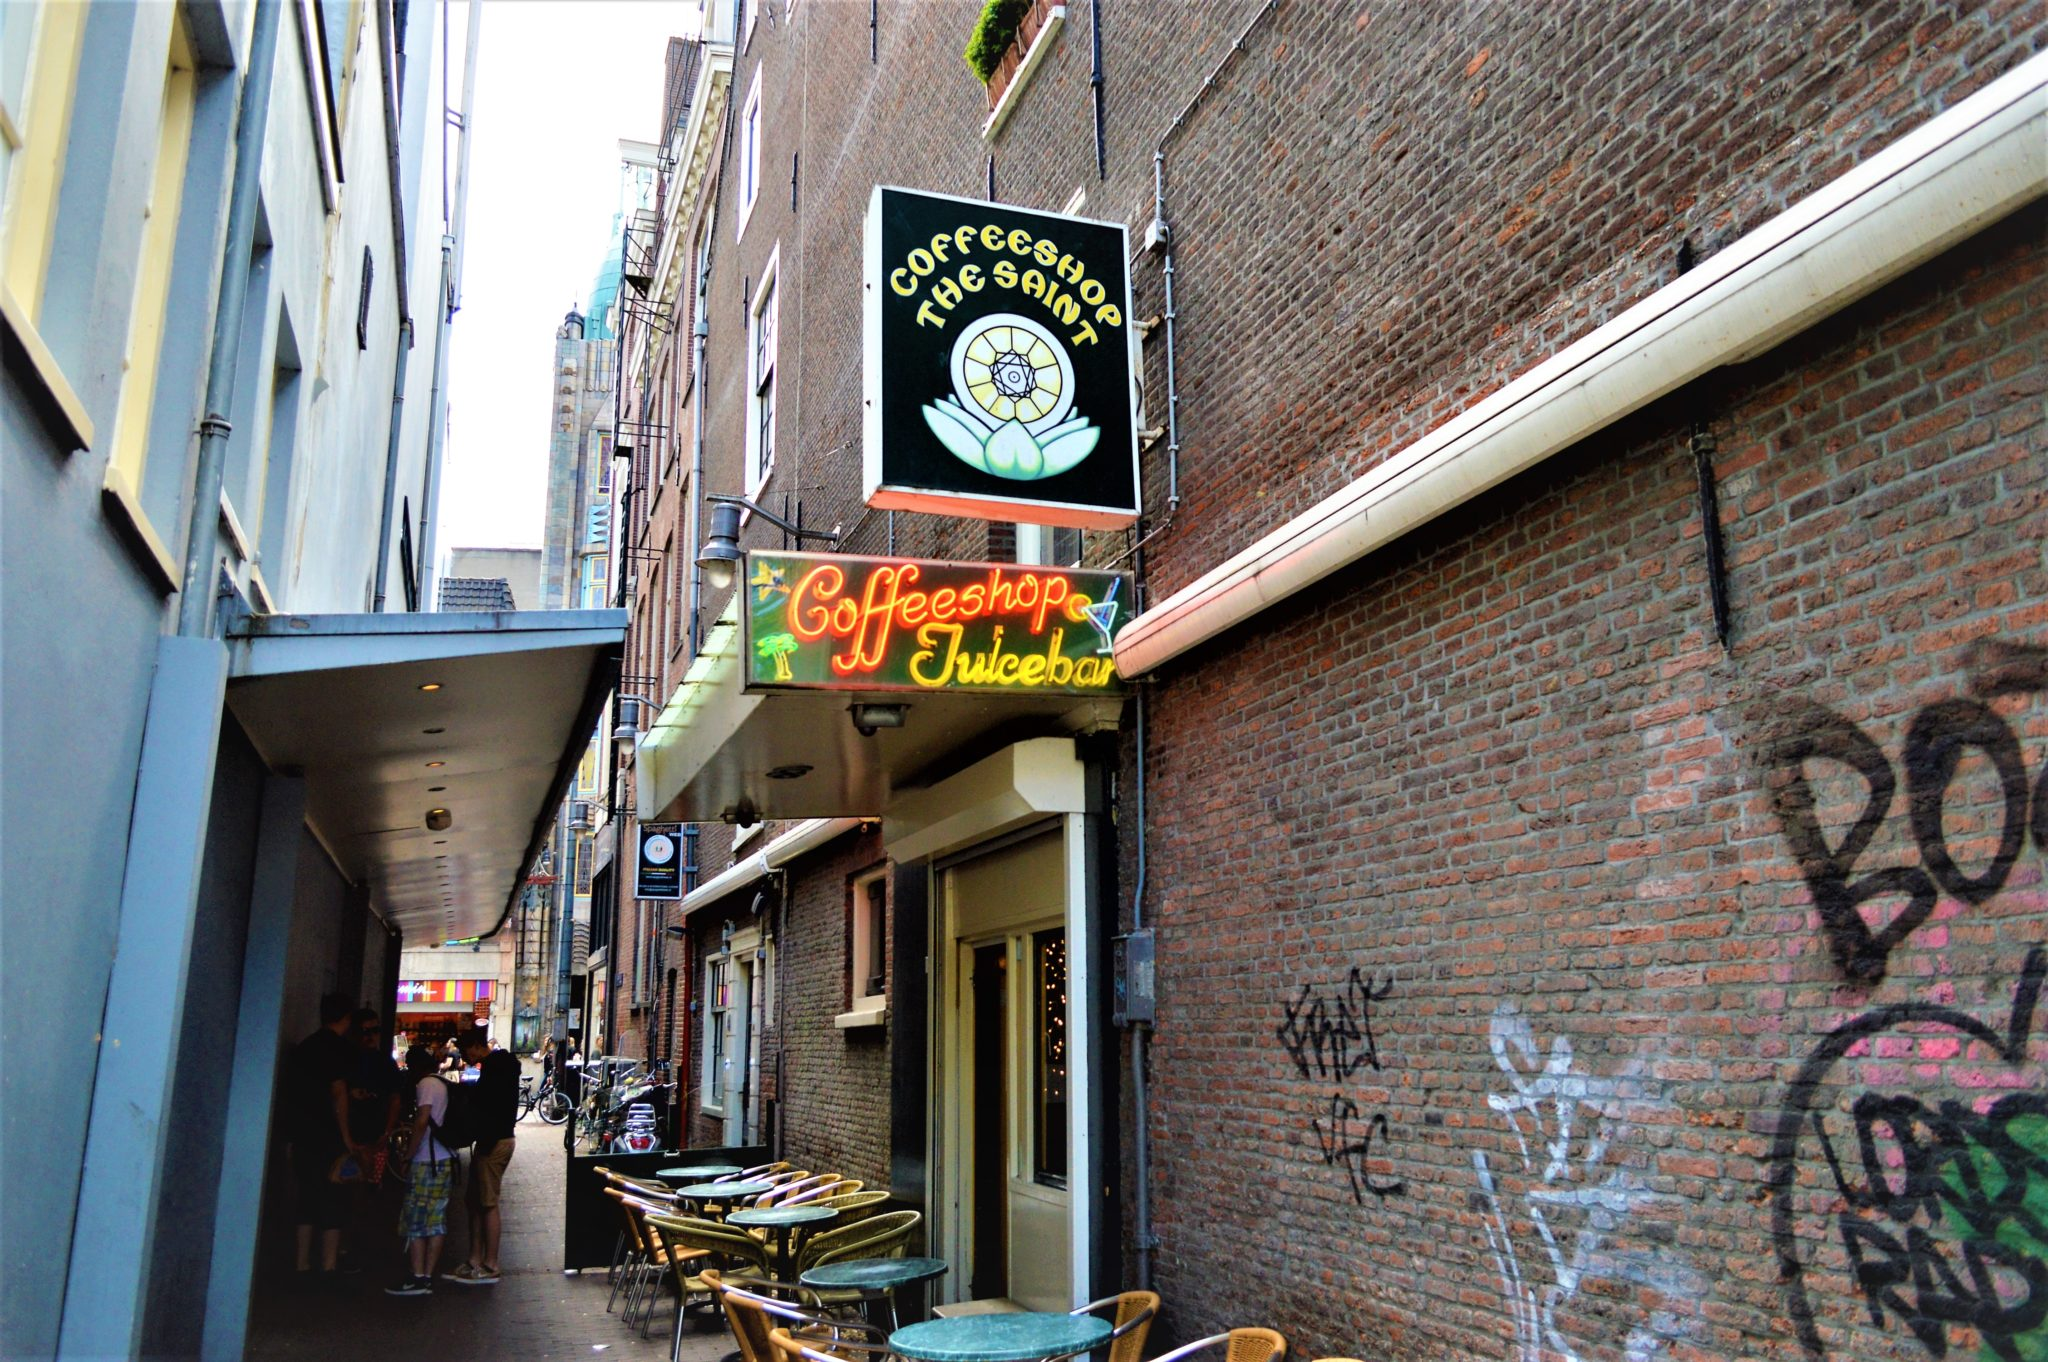 Coffee shop, Amsterdam, Holland